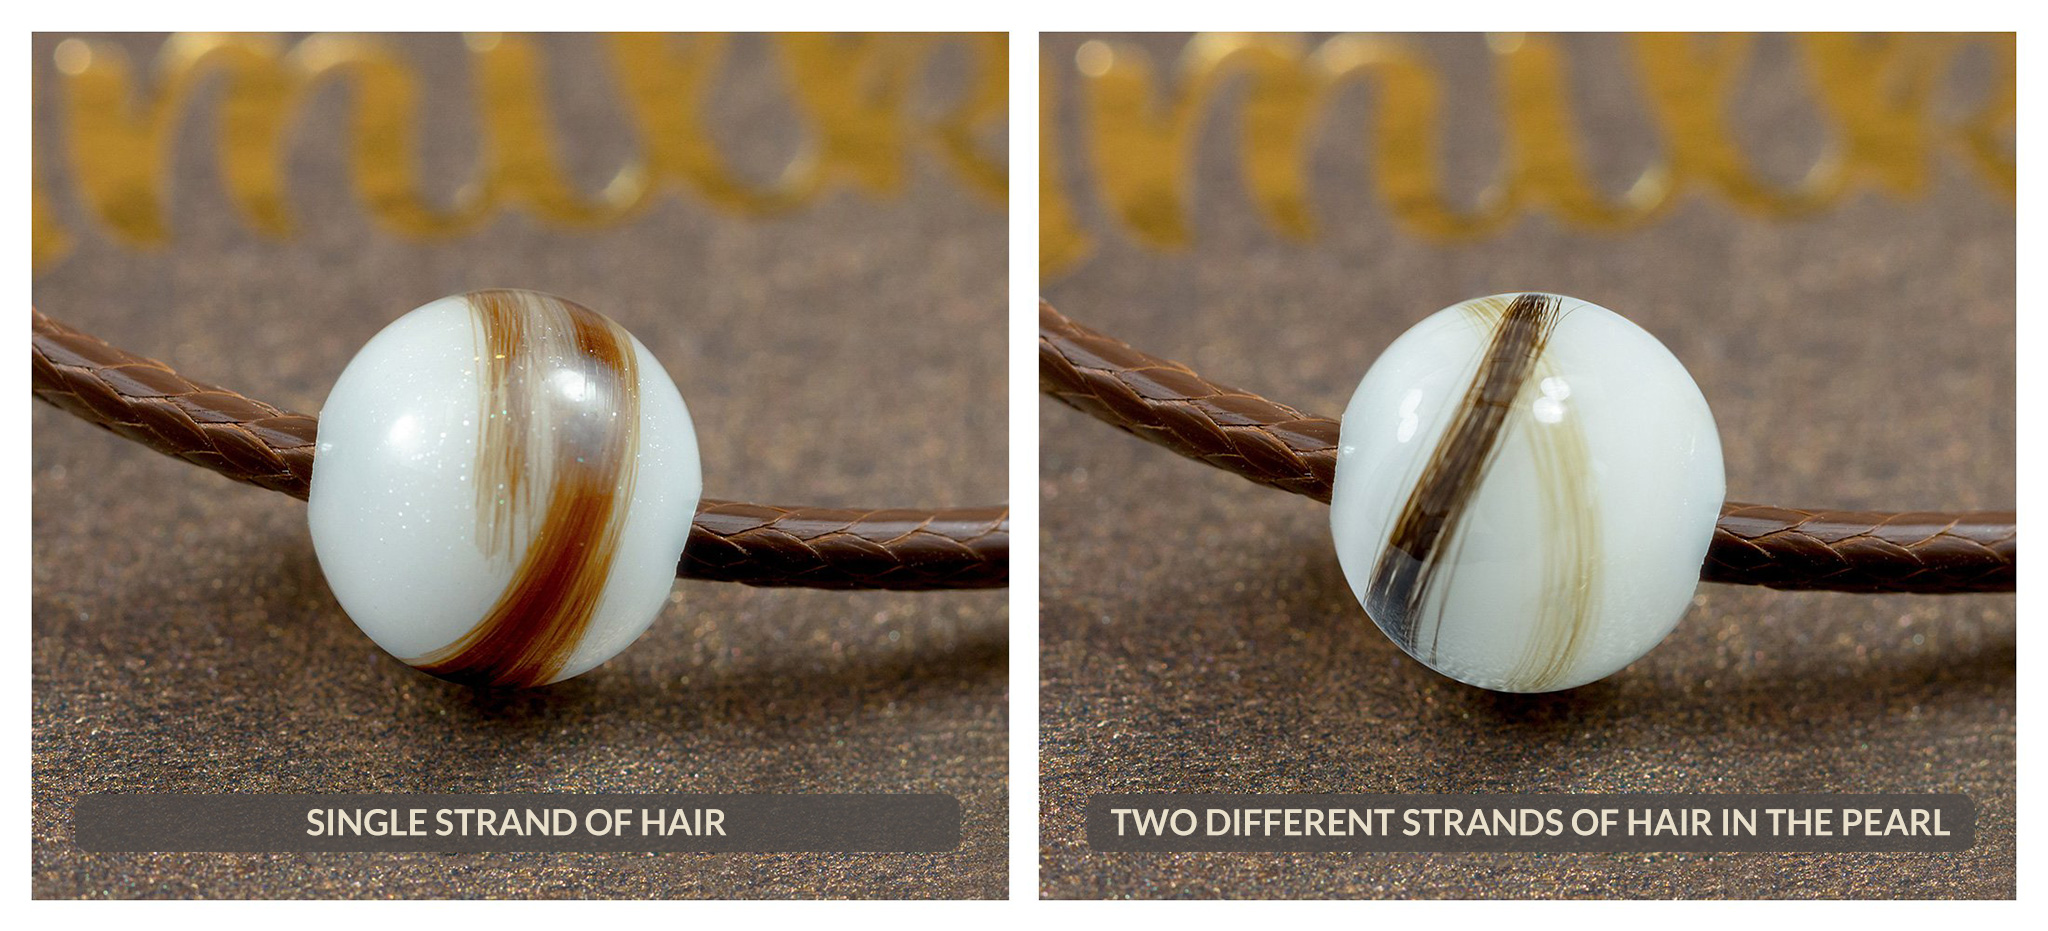 Hair strands embedded in the pearl *